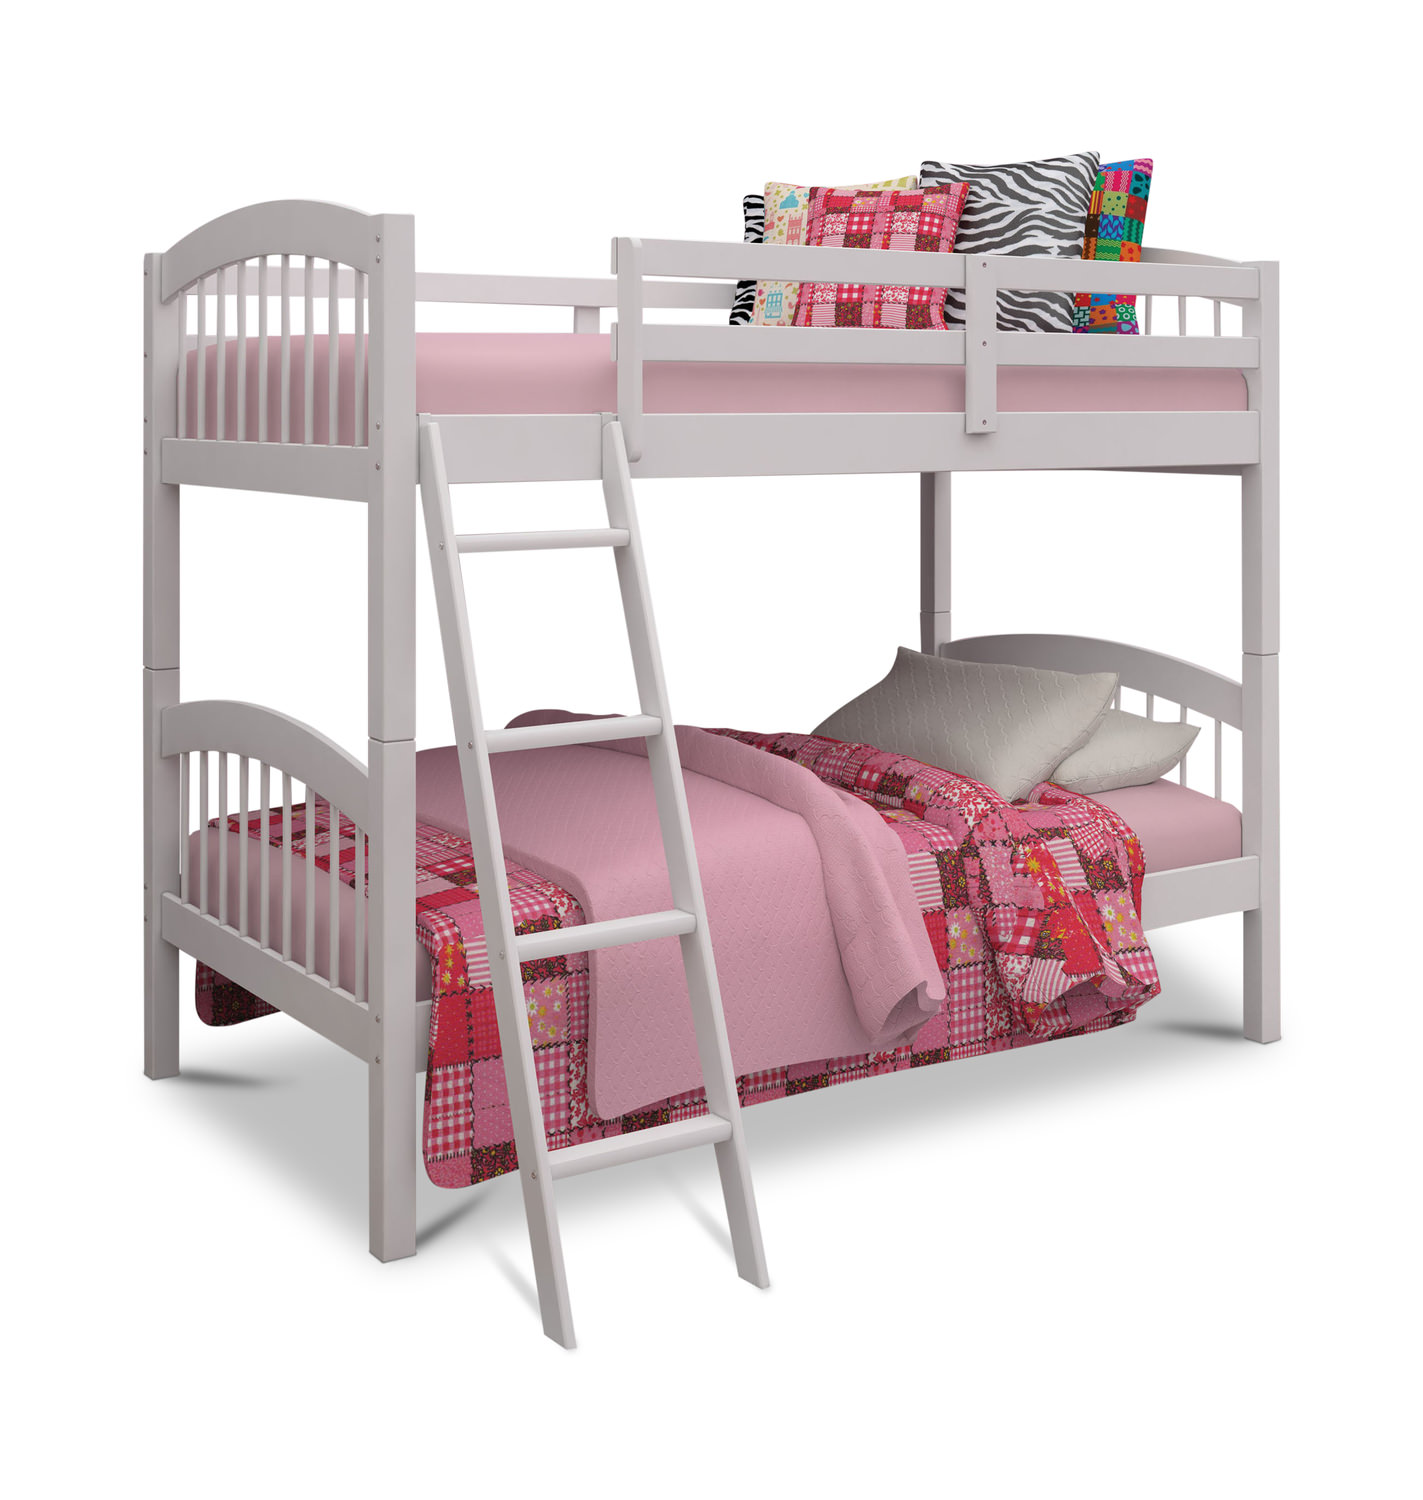 Twin bunk beds white - Pinehurst Ii Twin Over Twin Bunk Bed White Finish